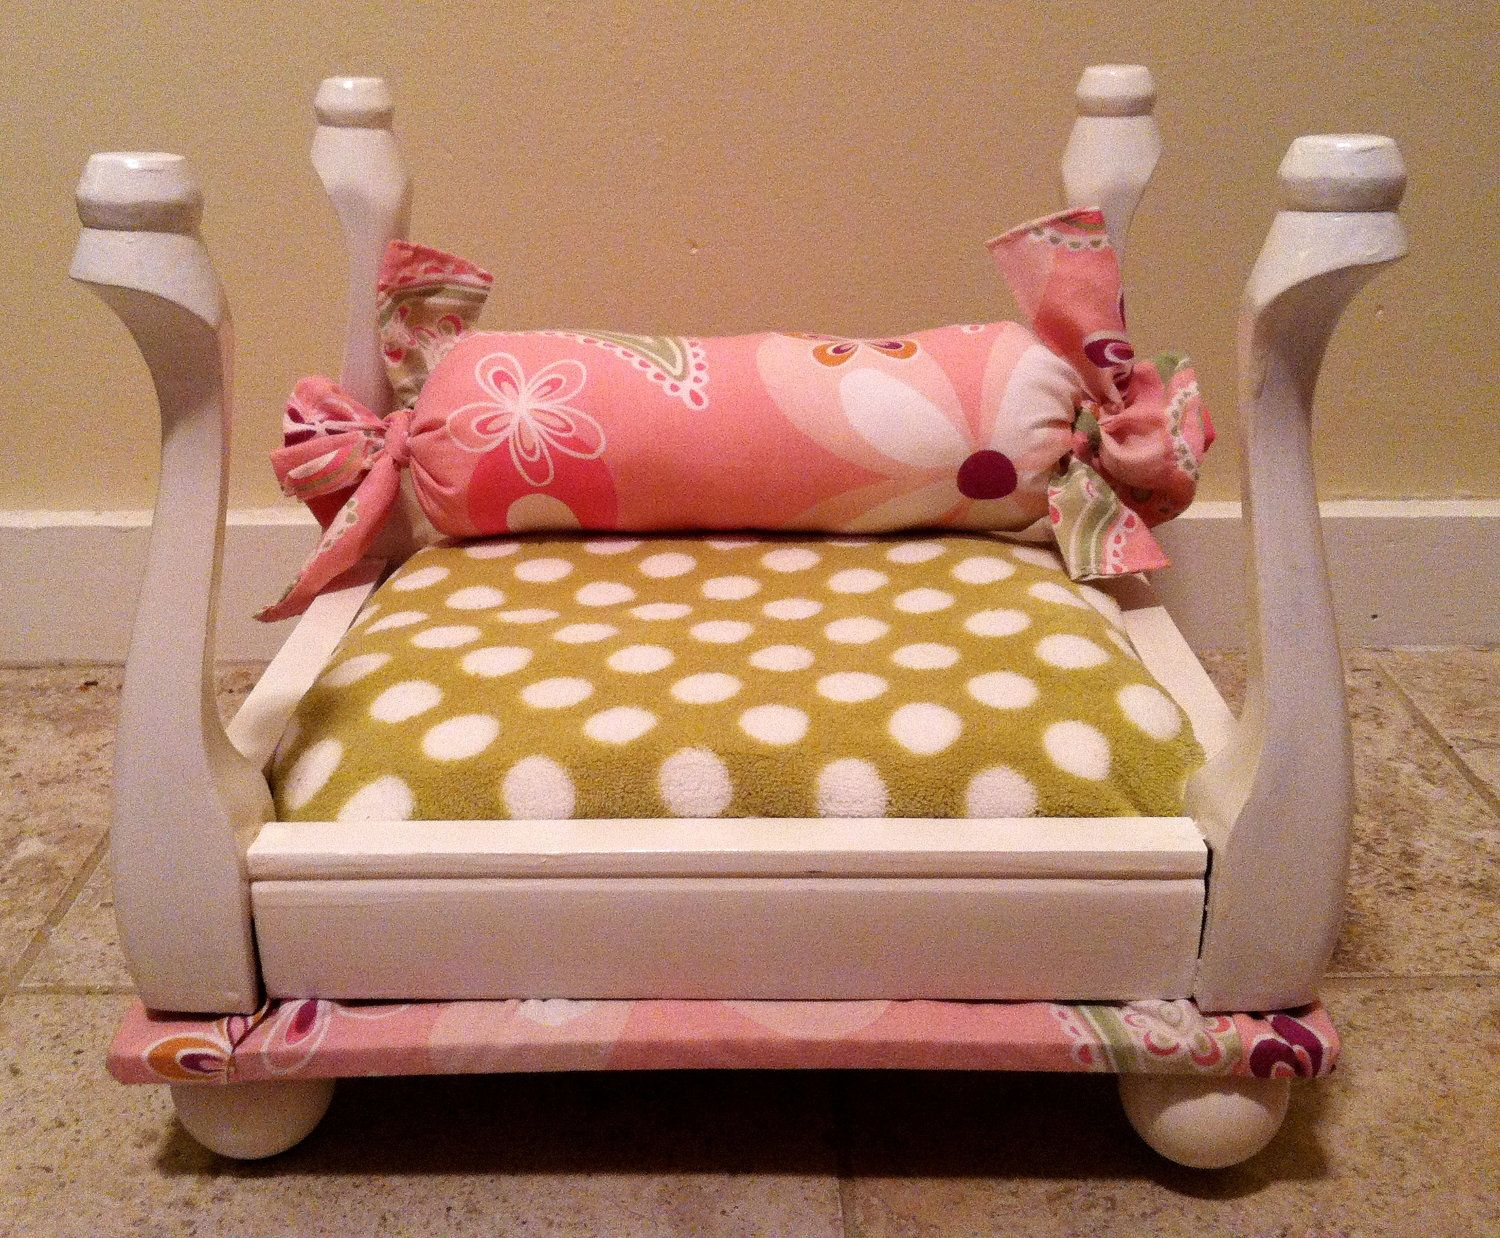 Upcycled Pet Bed Made From A Itty Bitty Stool Dog Beds For Small